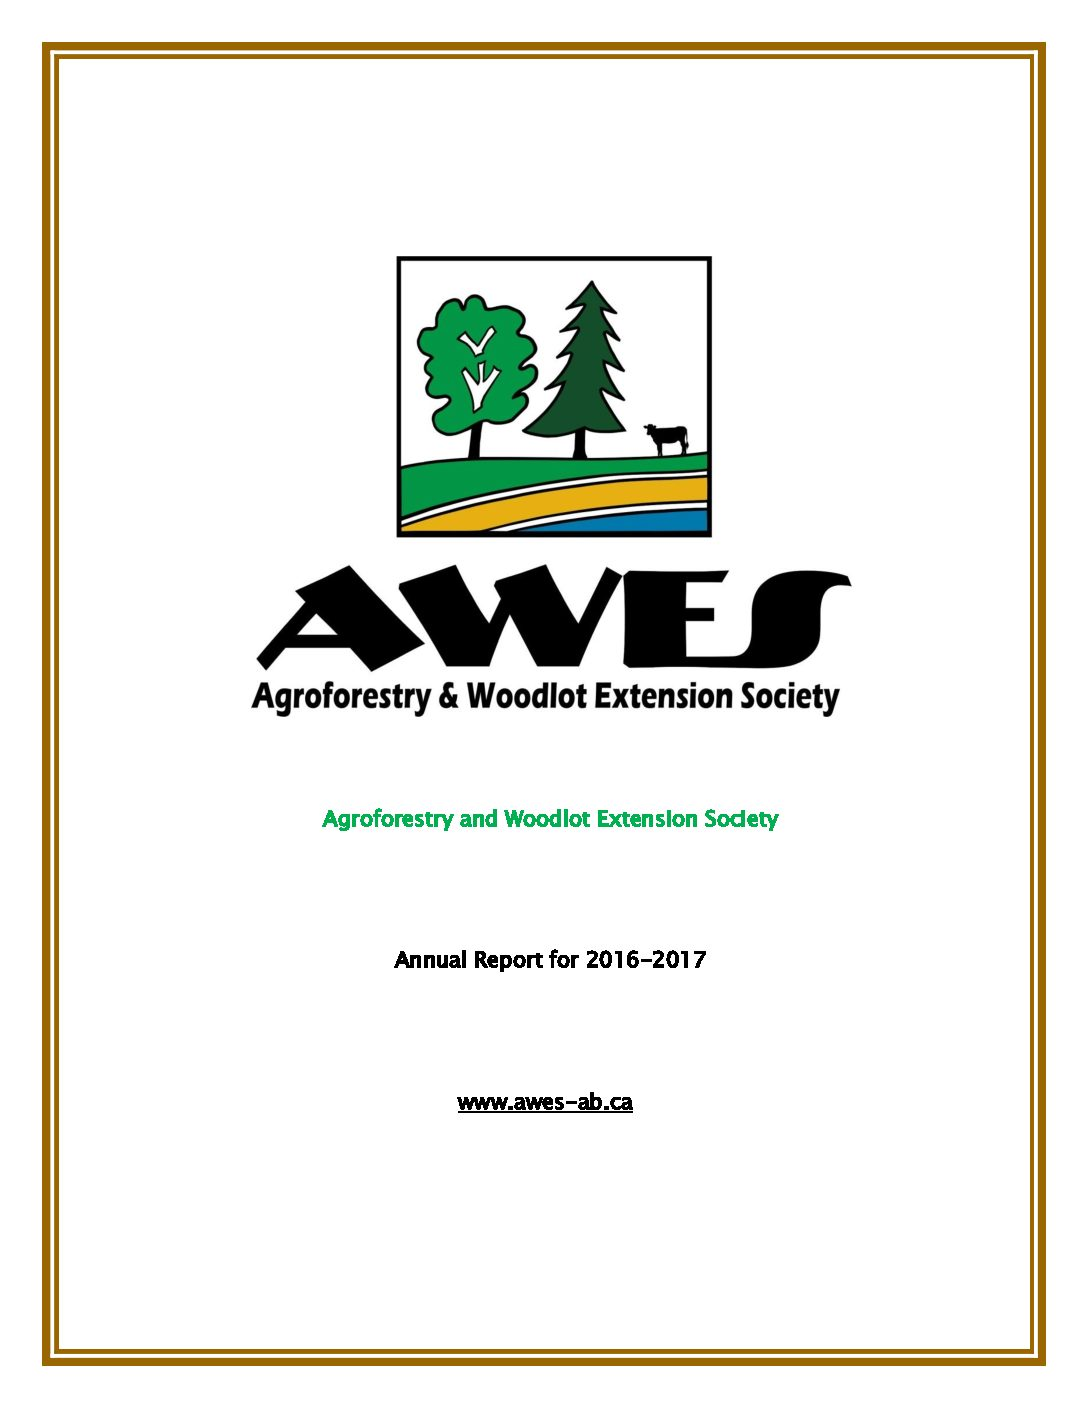 AWES Annual Report 2016-2017